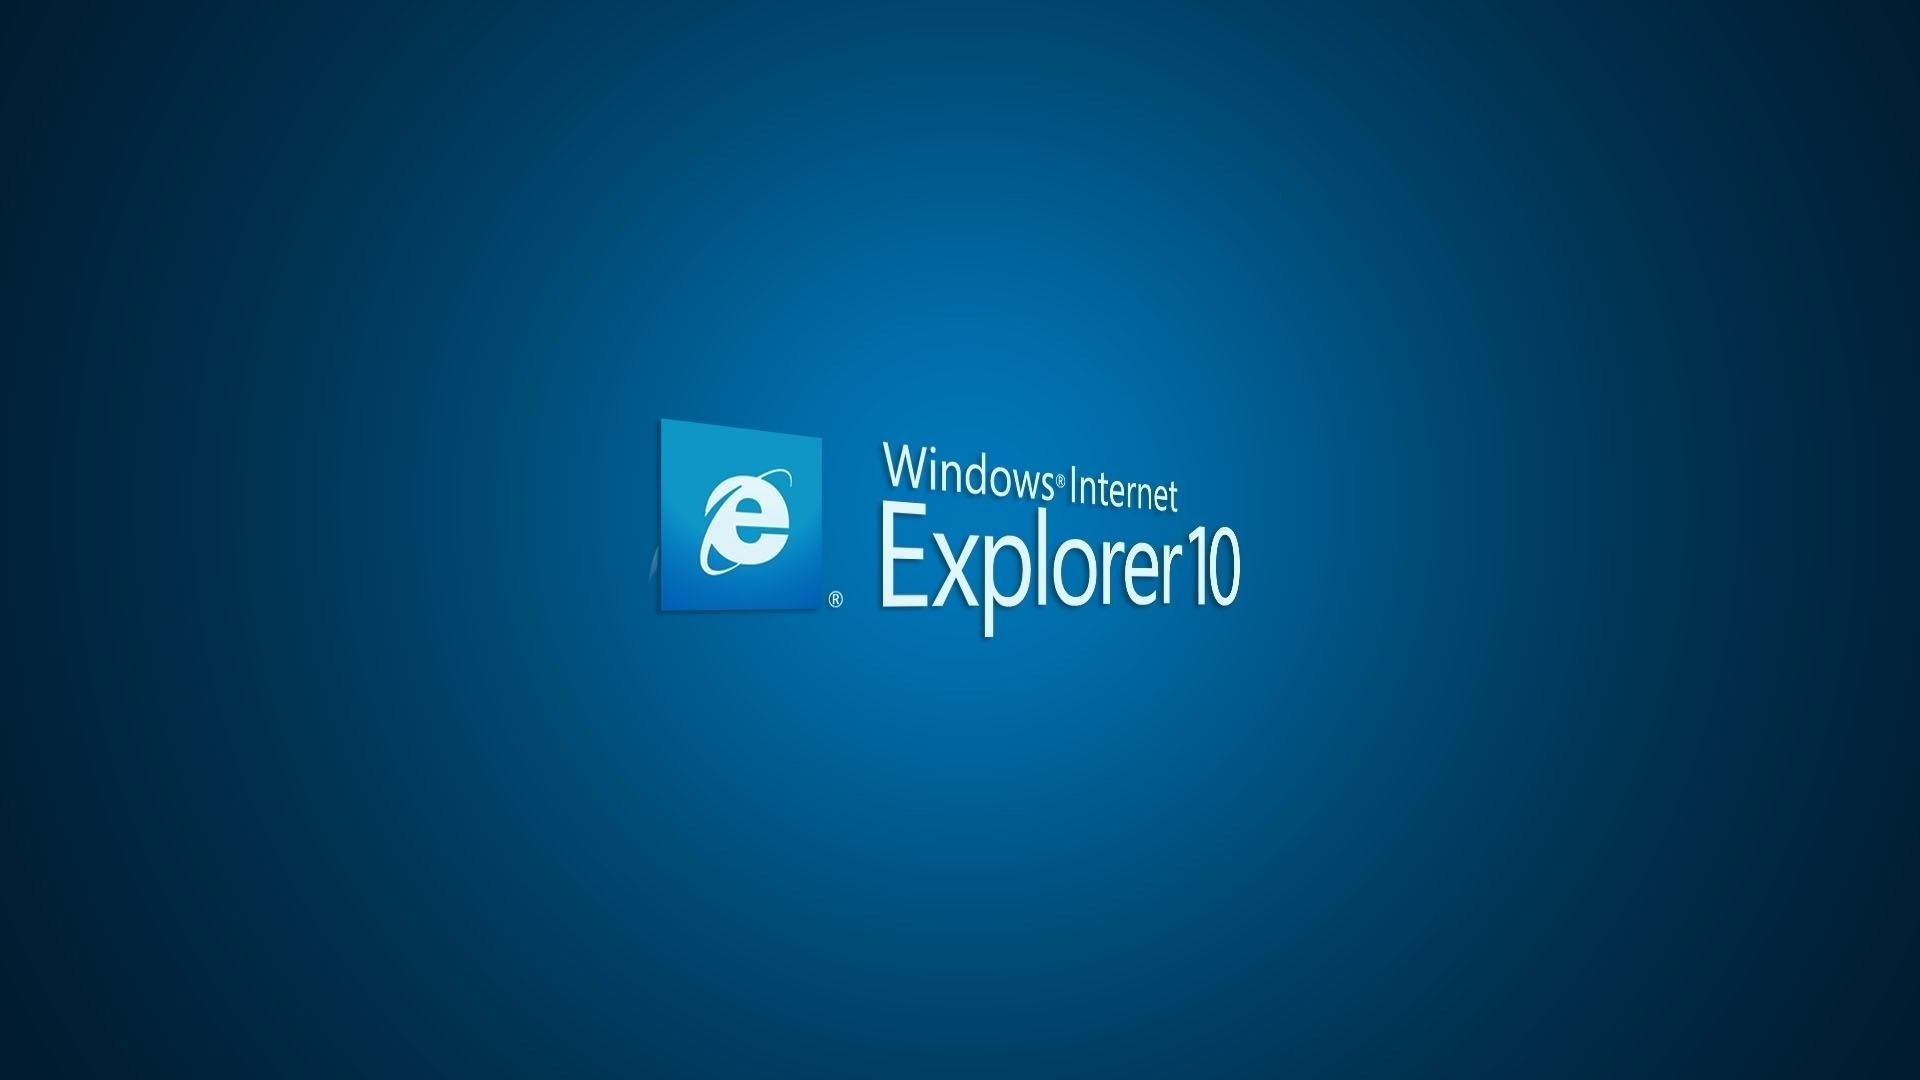 microsoft windows internet explorer 10 Brand advertising Wallpapers 1920x1080